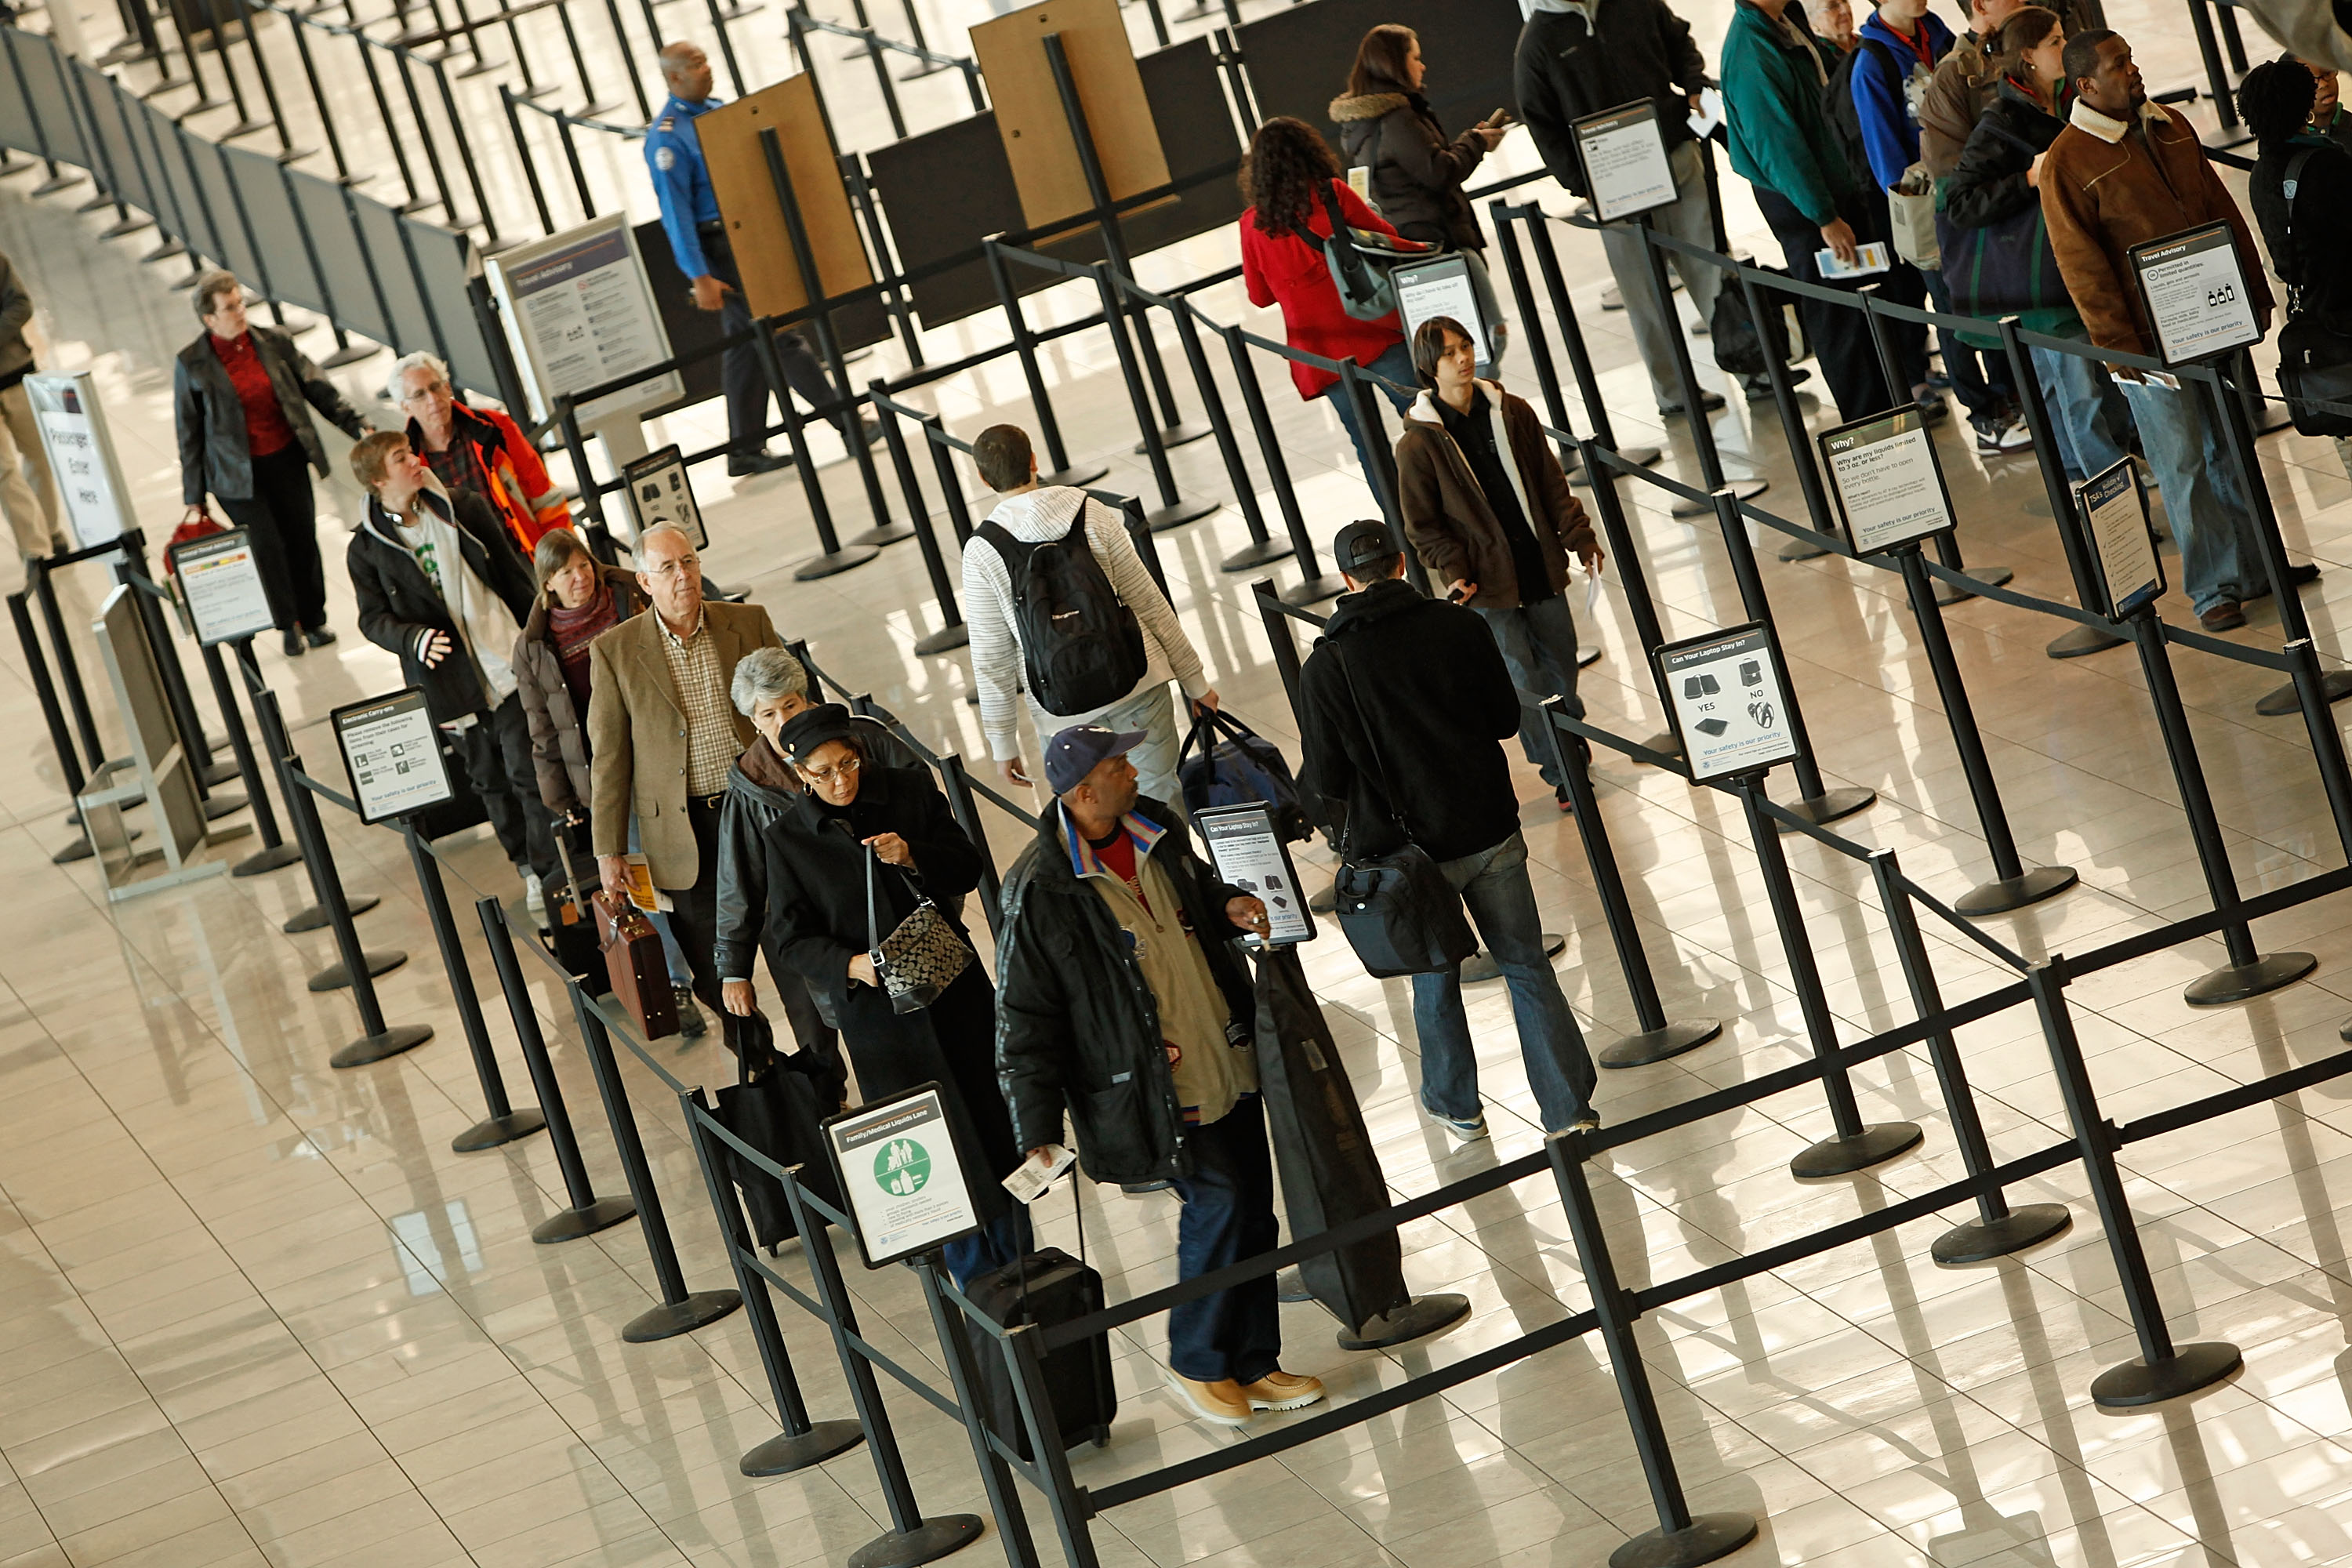 BWI sets passenger record in 2015